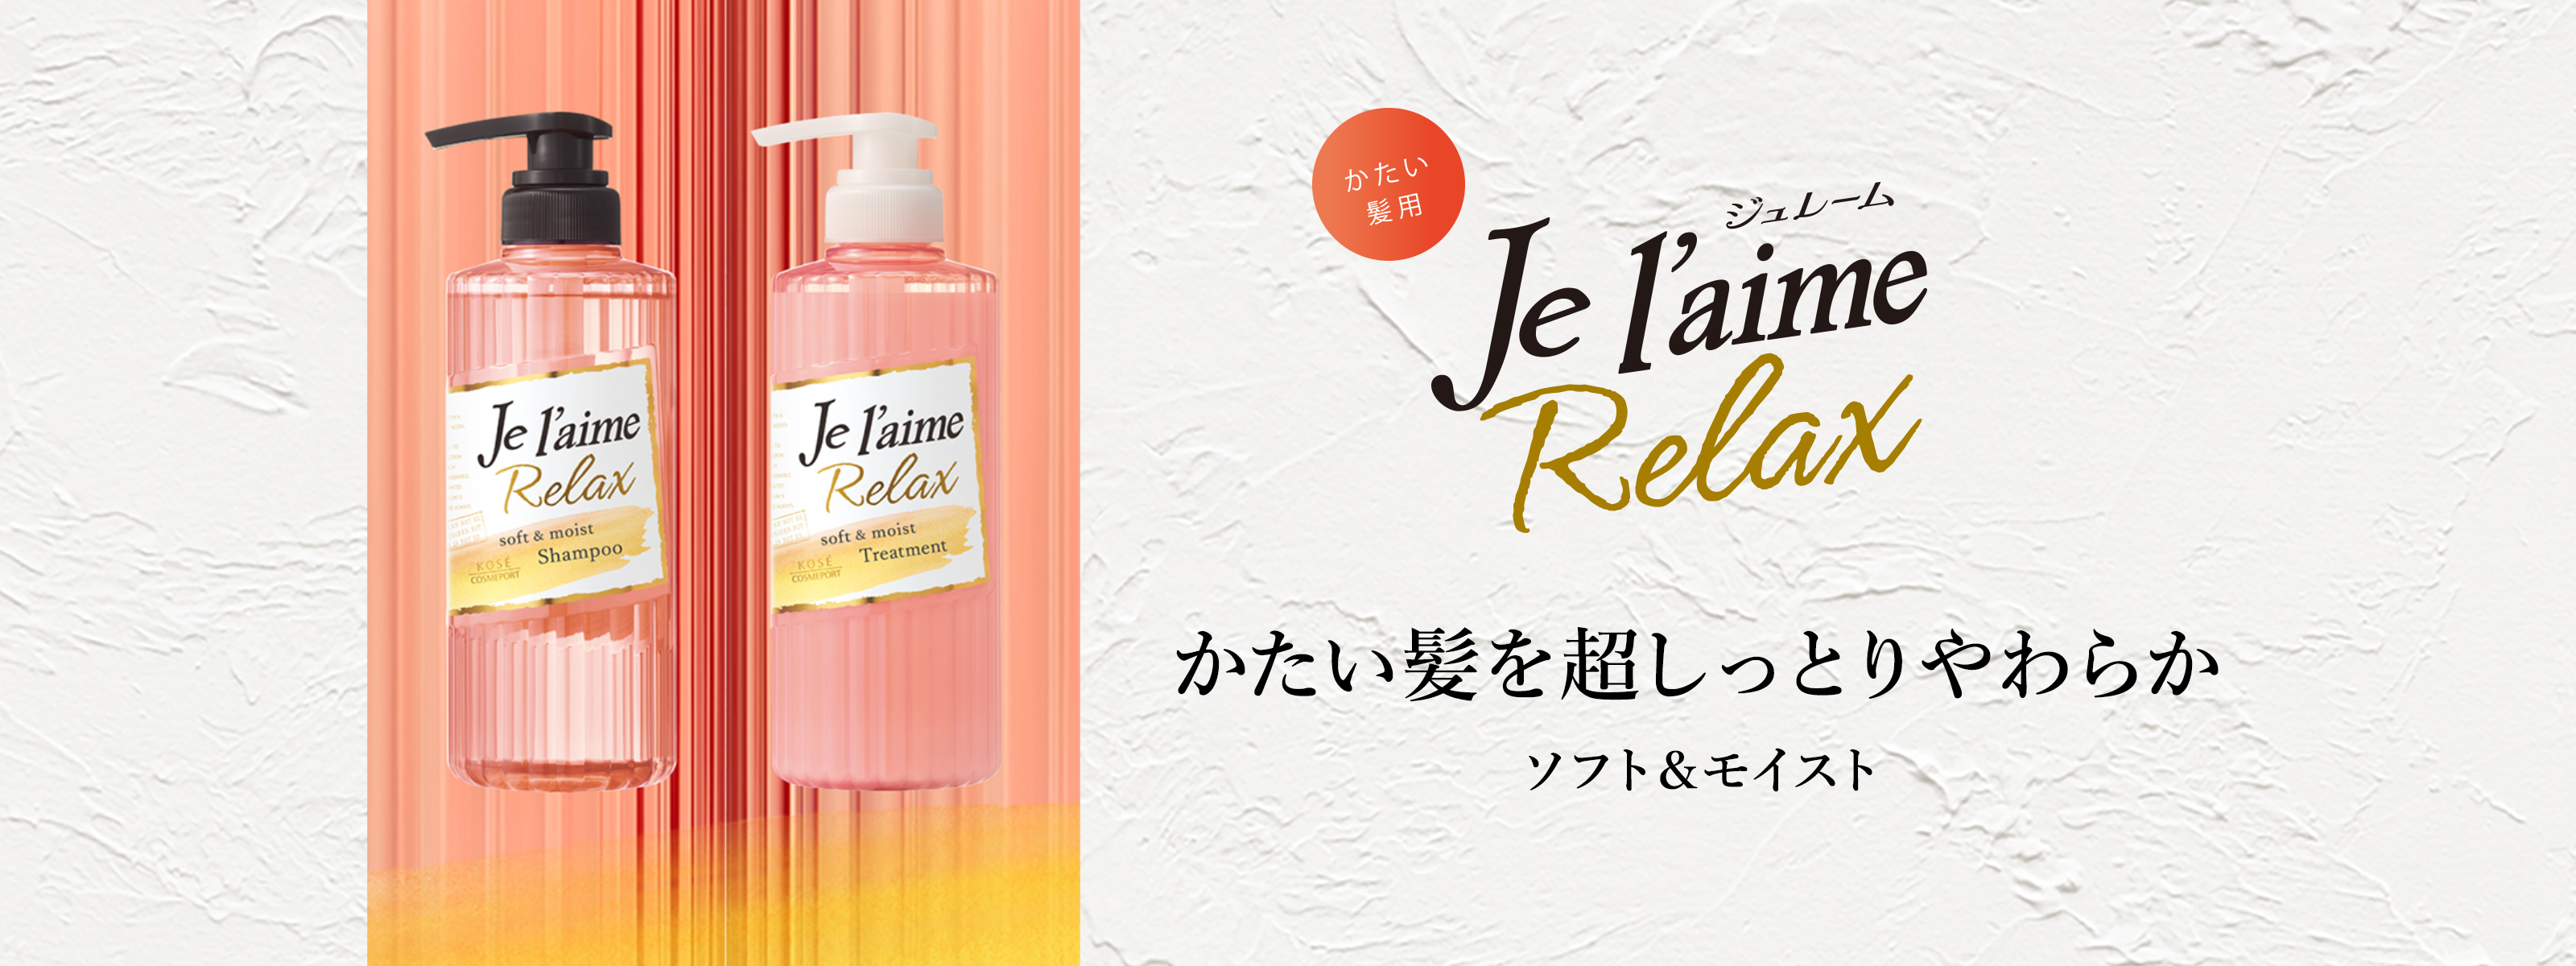 New Je l'aime Relax Leaves stiff hair ultra moist & soft